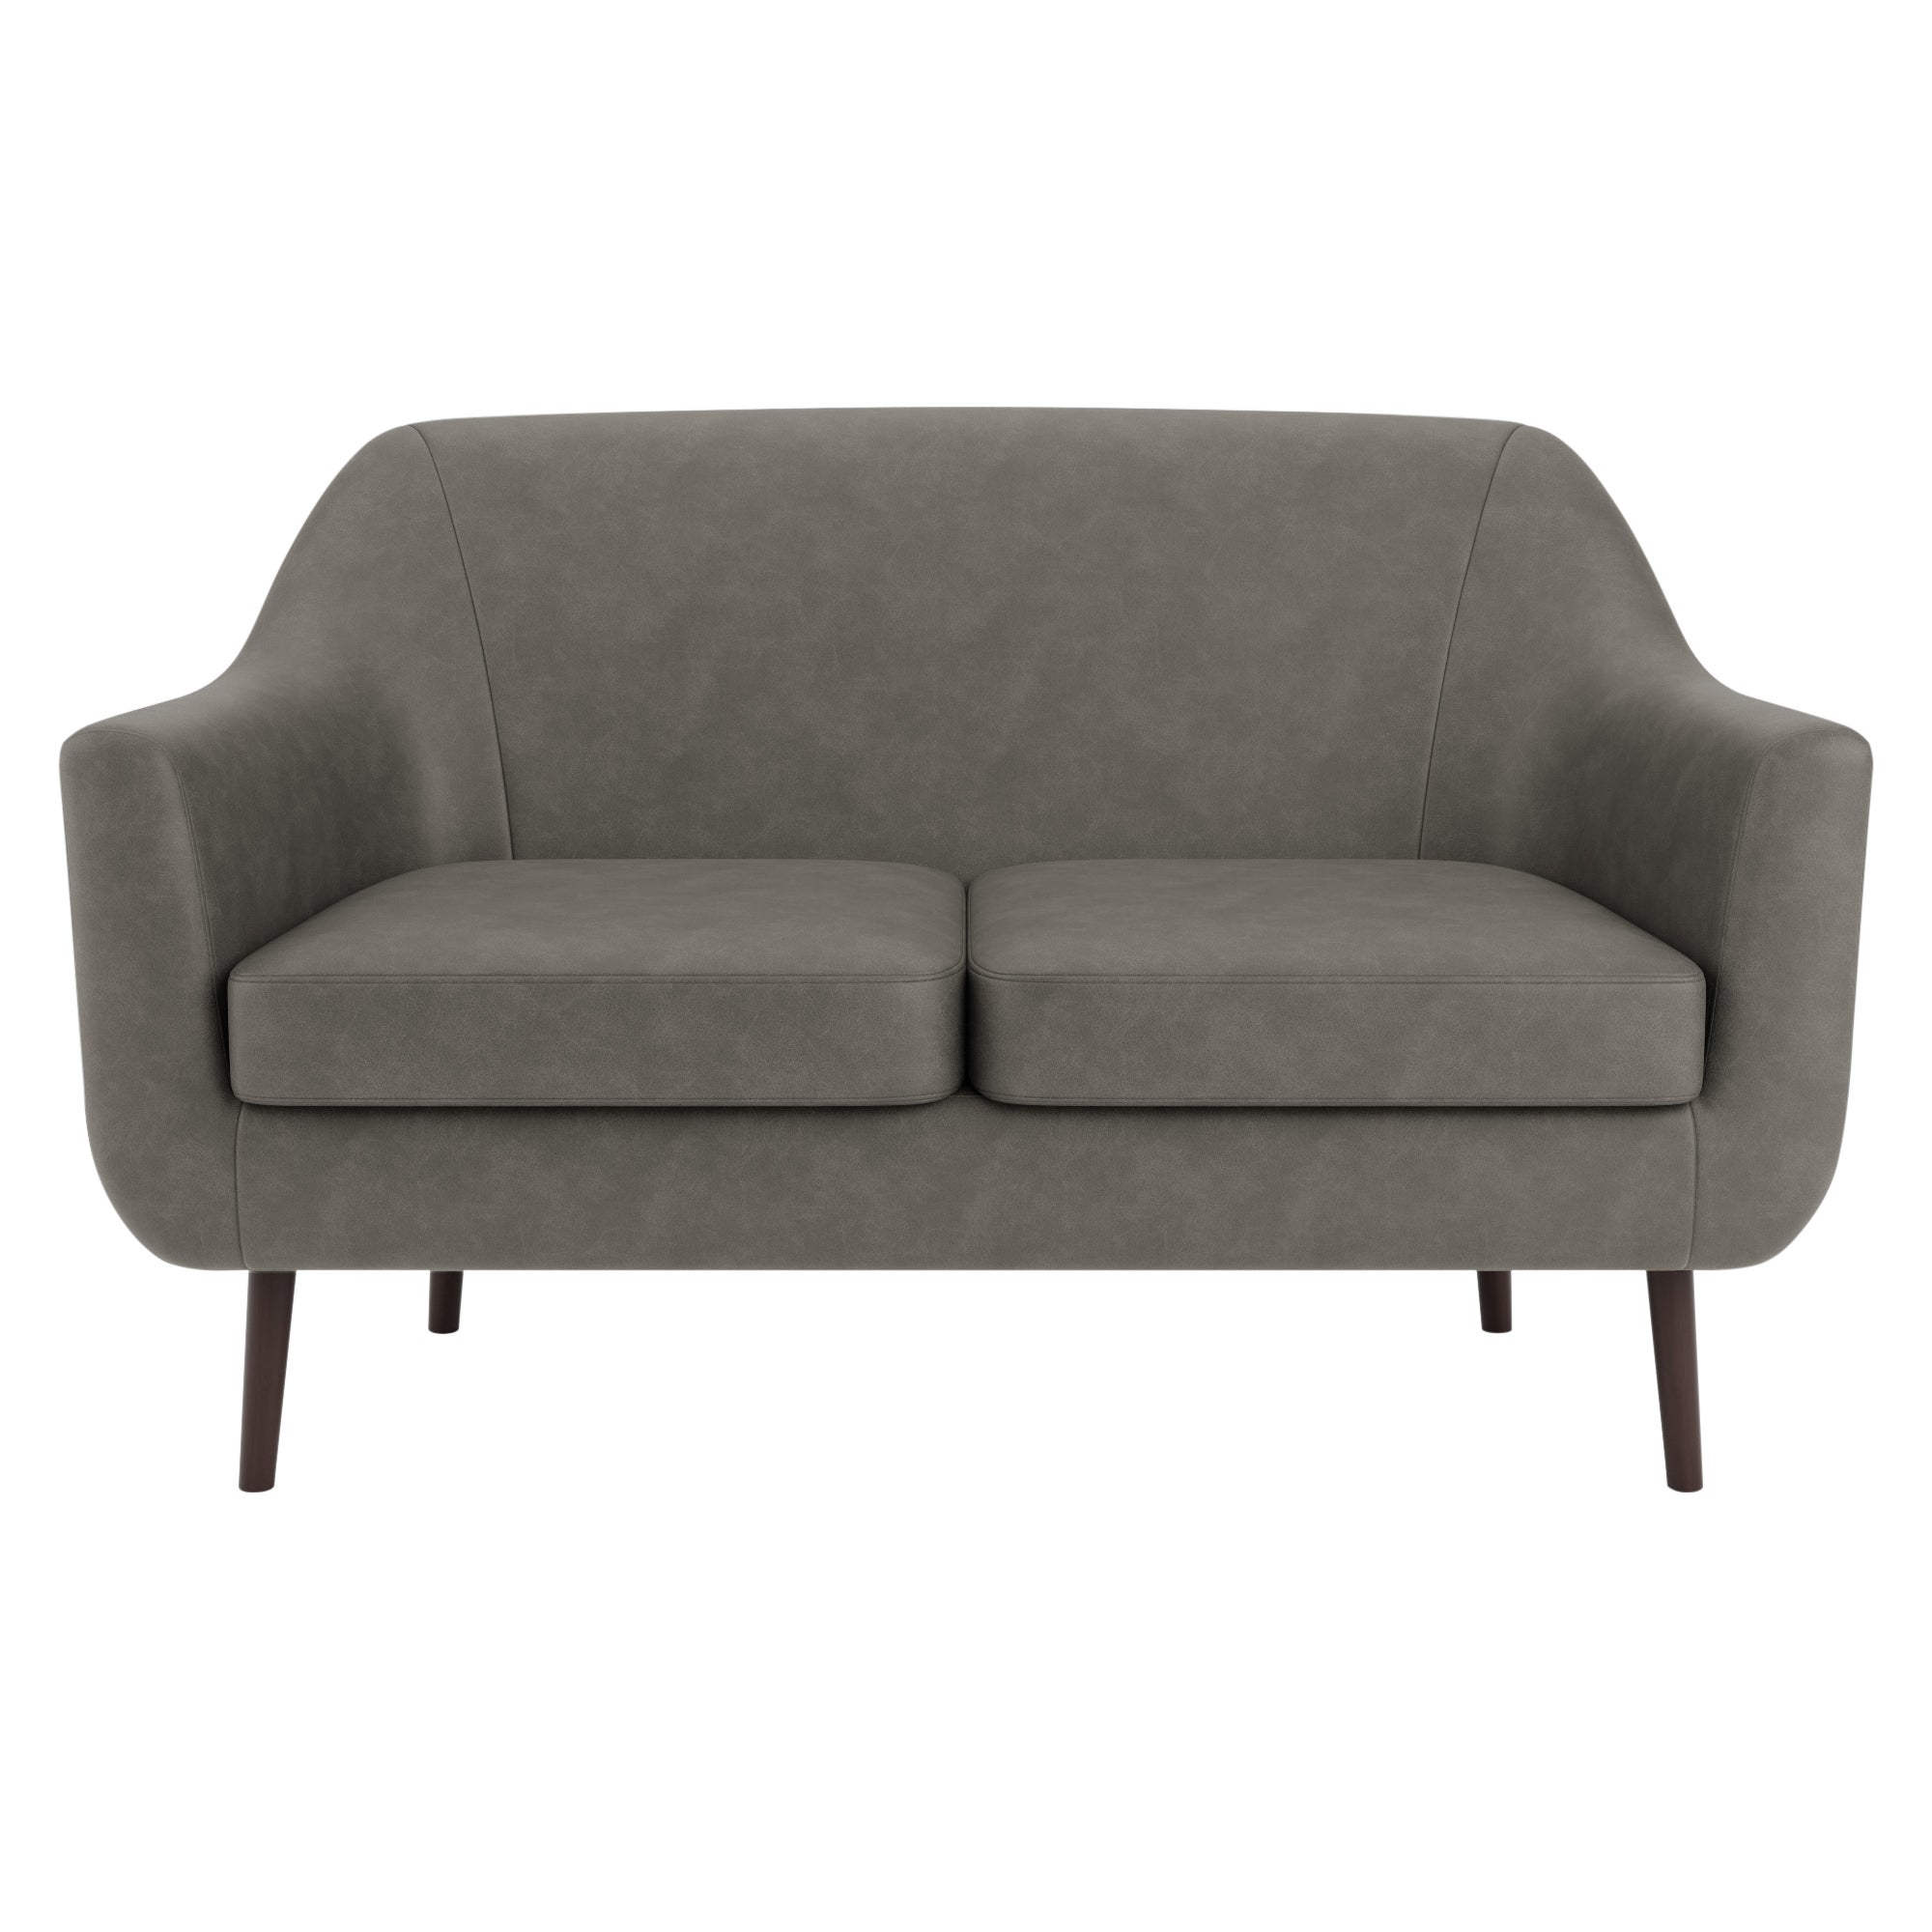 Eddie Distressed Faux Leather 2 Seater Compact Tub Sofa Grey